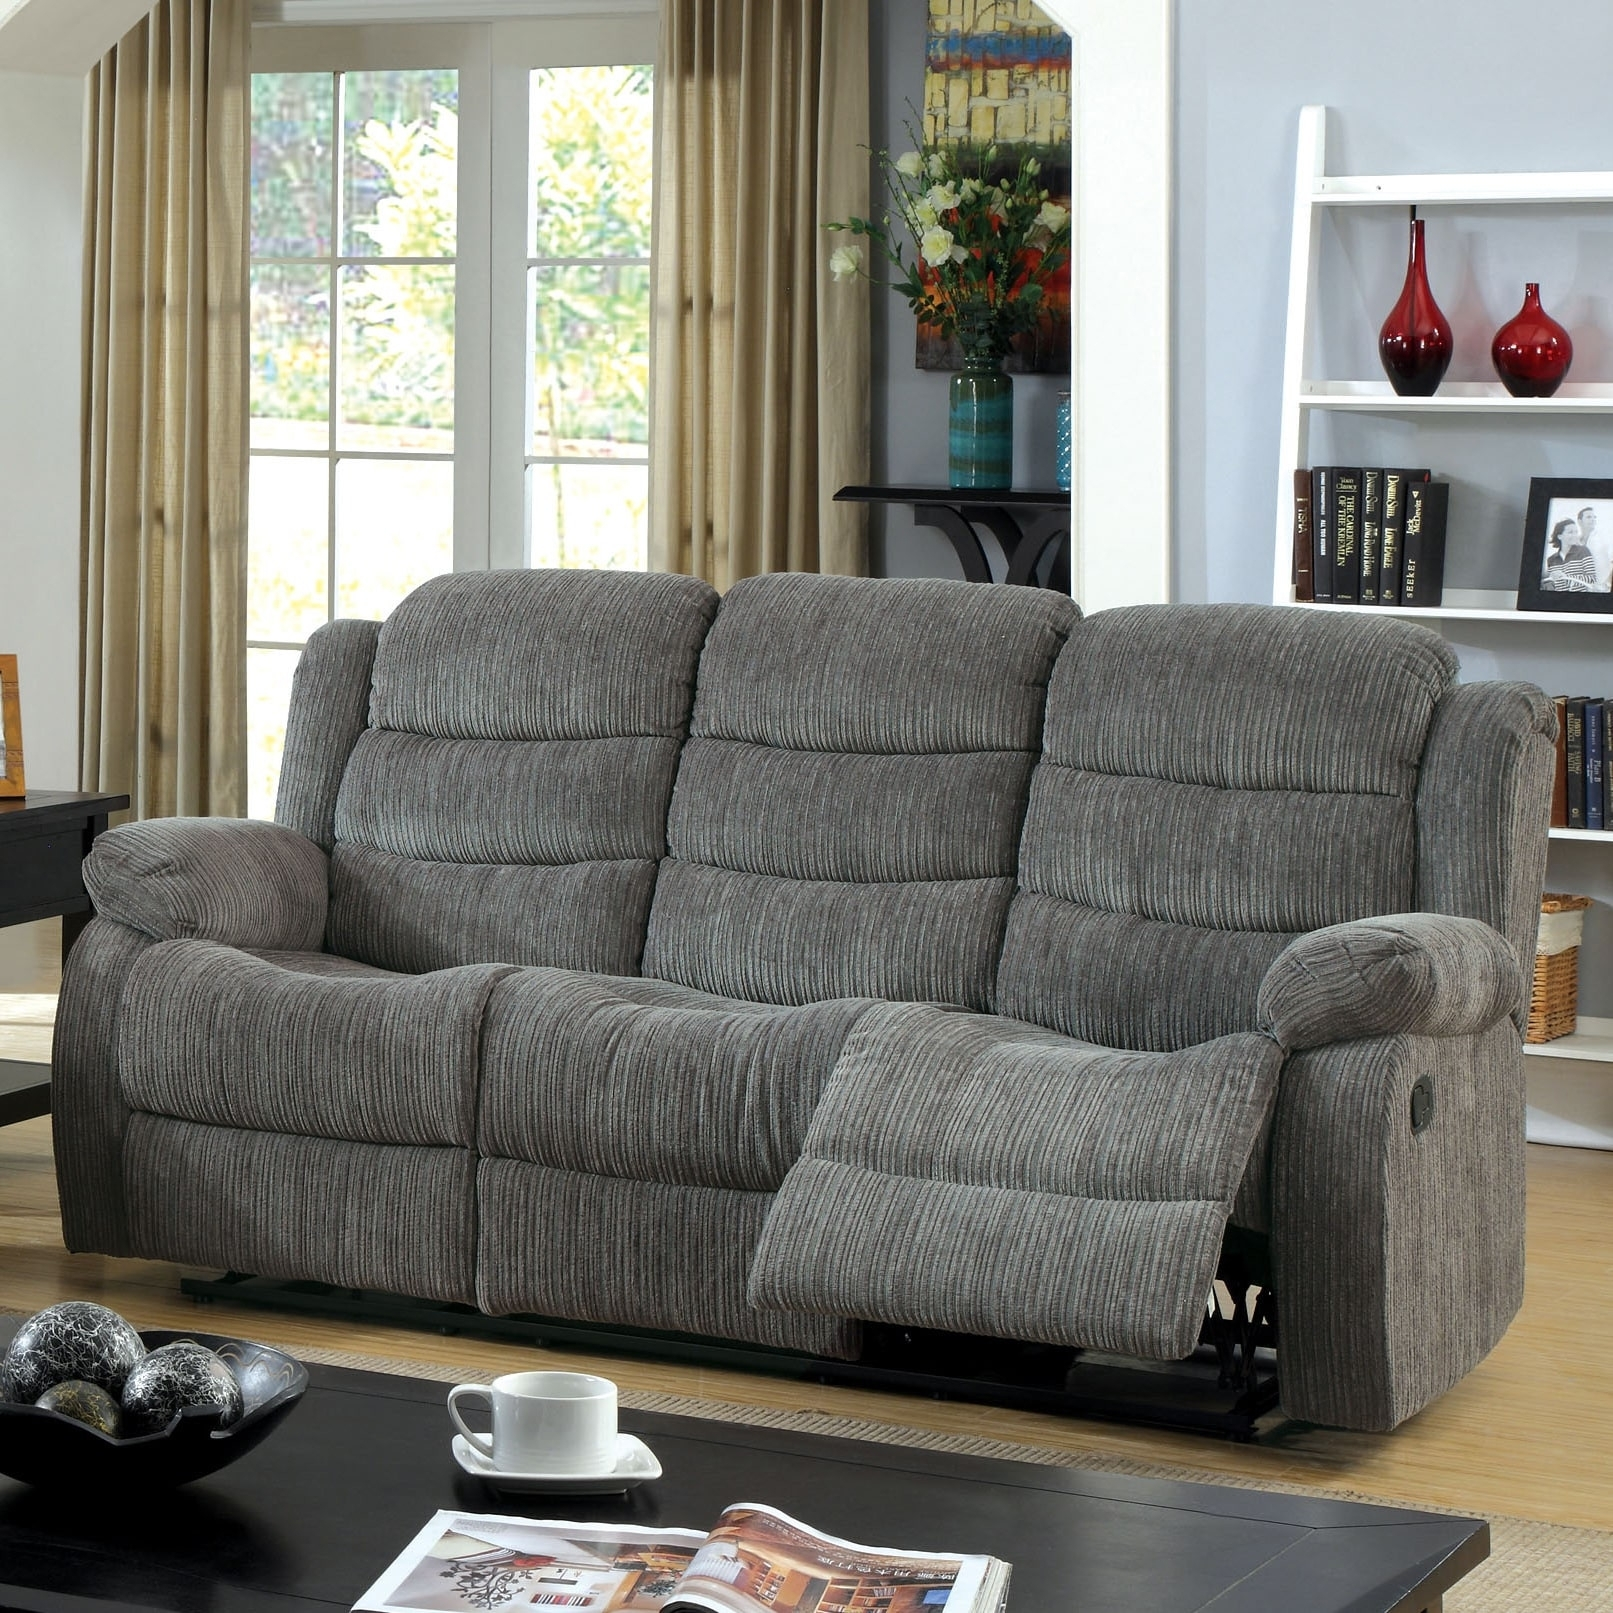 10 Unique American Furniture Warehouse Greensboro Nc | Home In Greensboro Nc Sectional Sofas (Gallery 5 of 10)